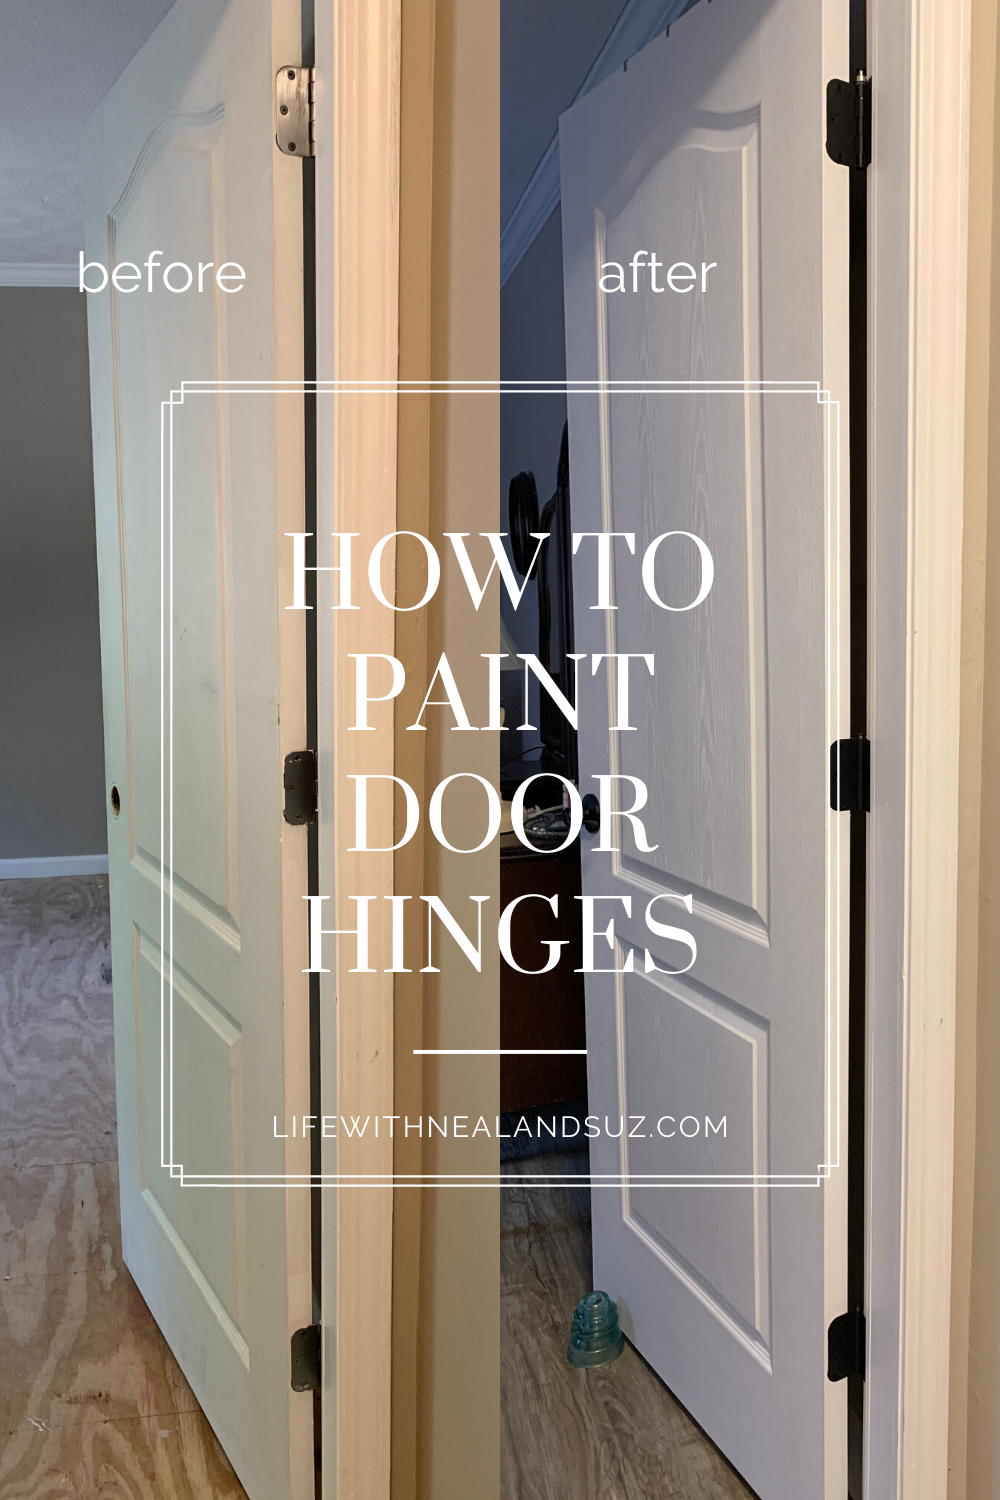 How to Paint Door Hinges